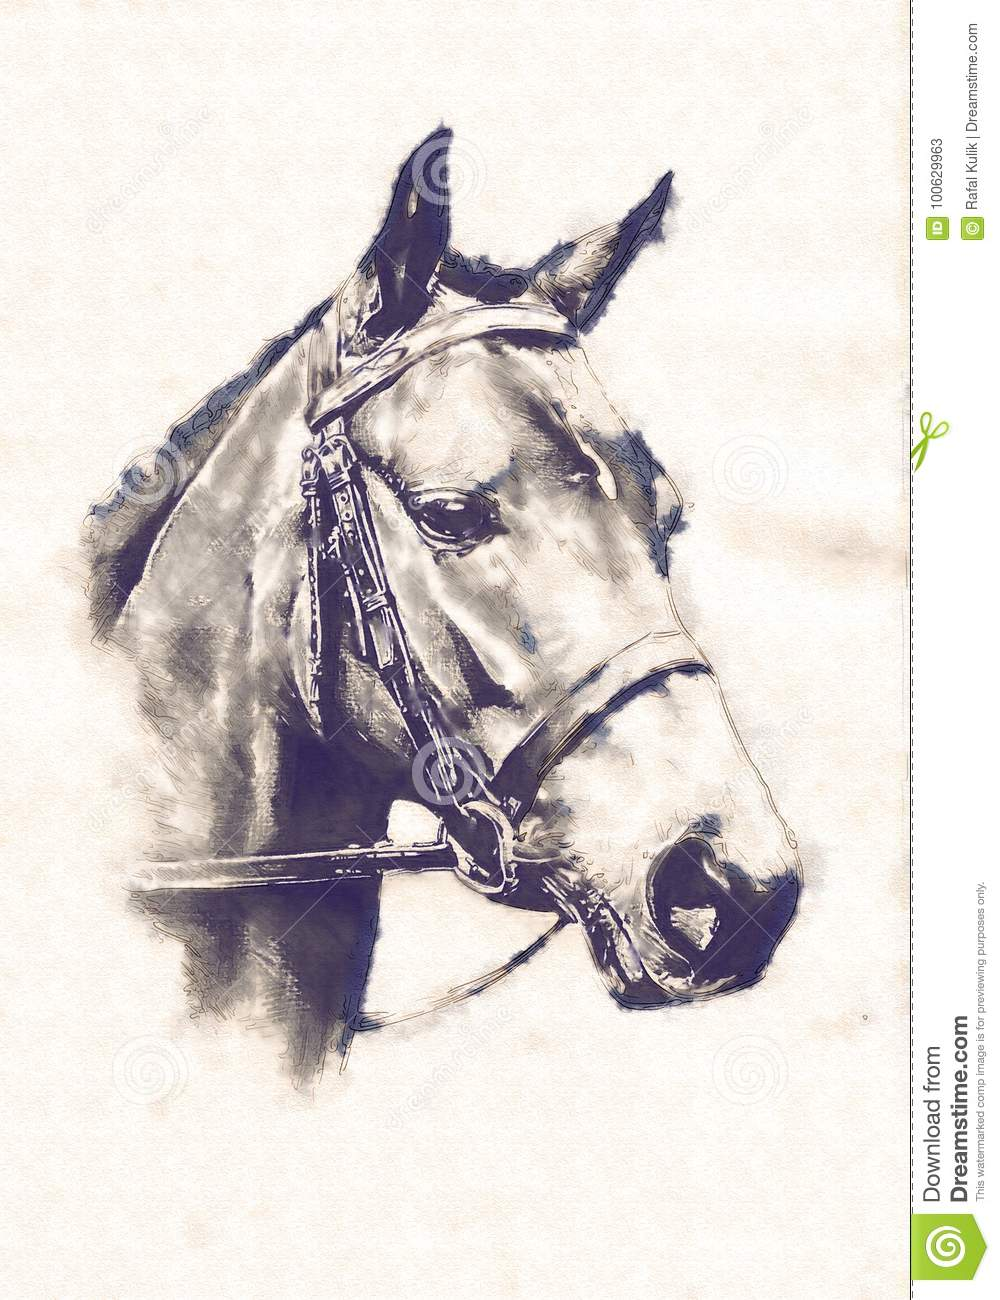 A very nice freehand horse head pencil drawing